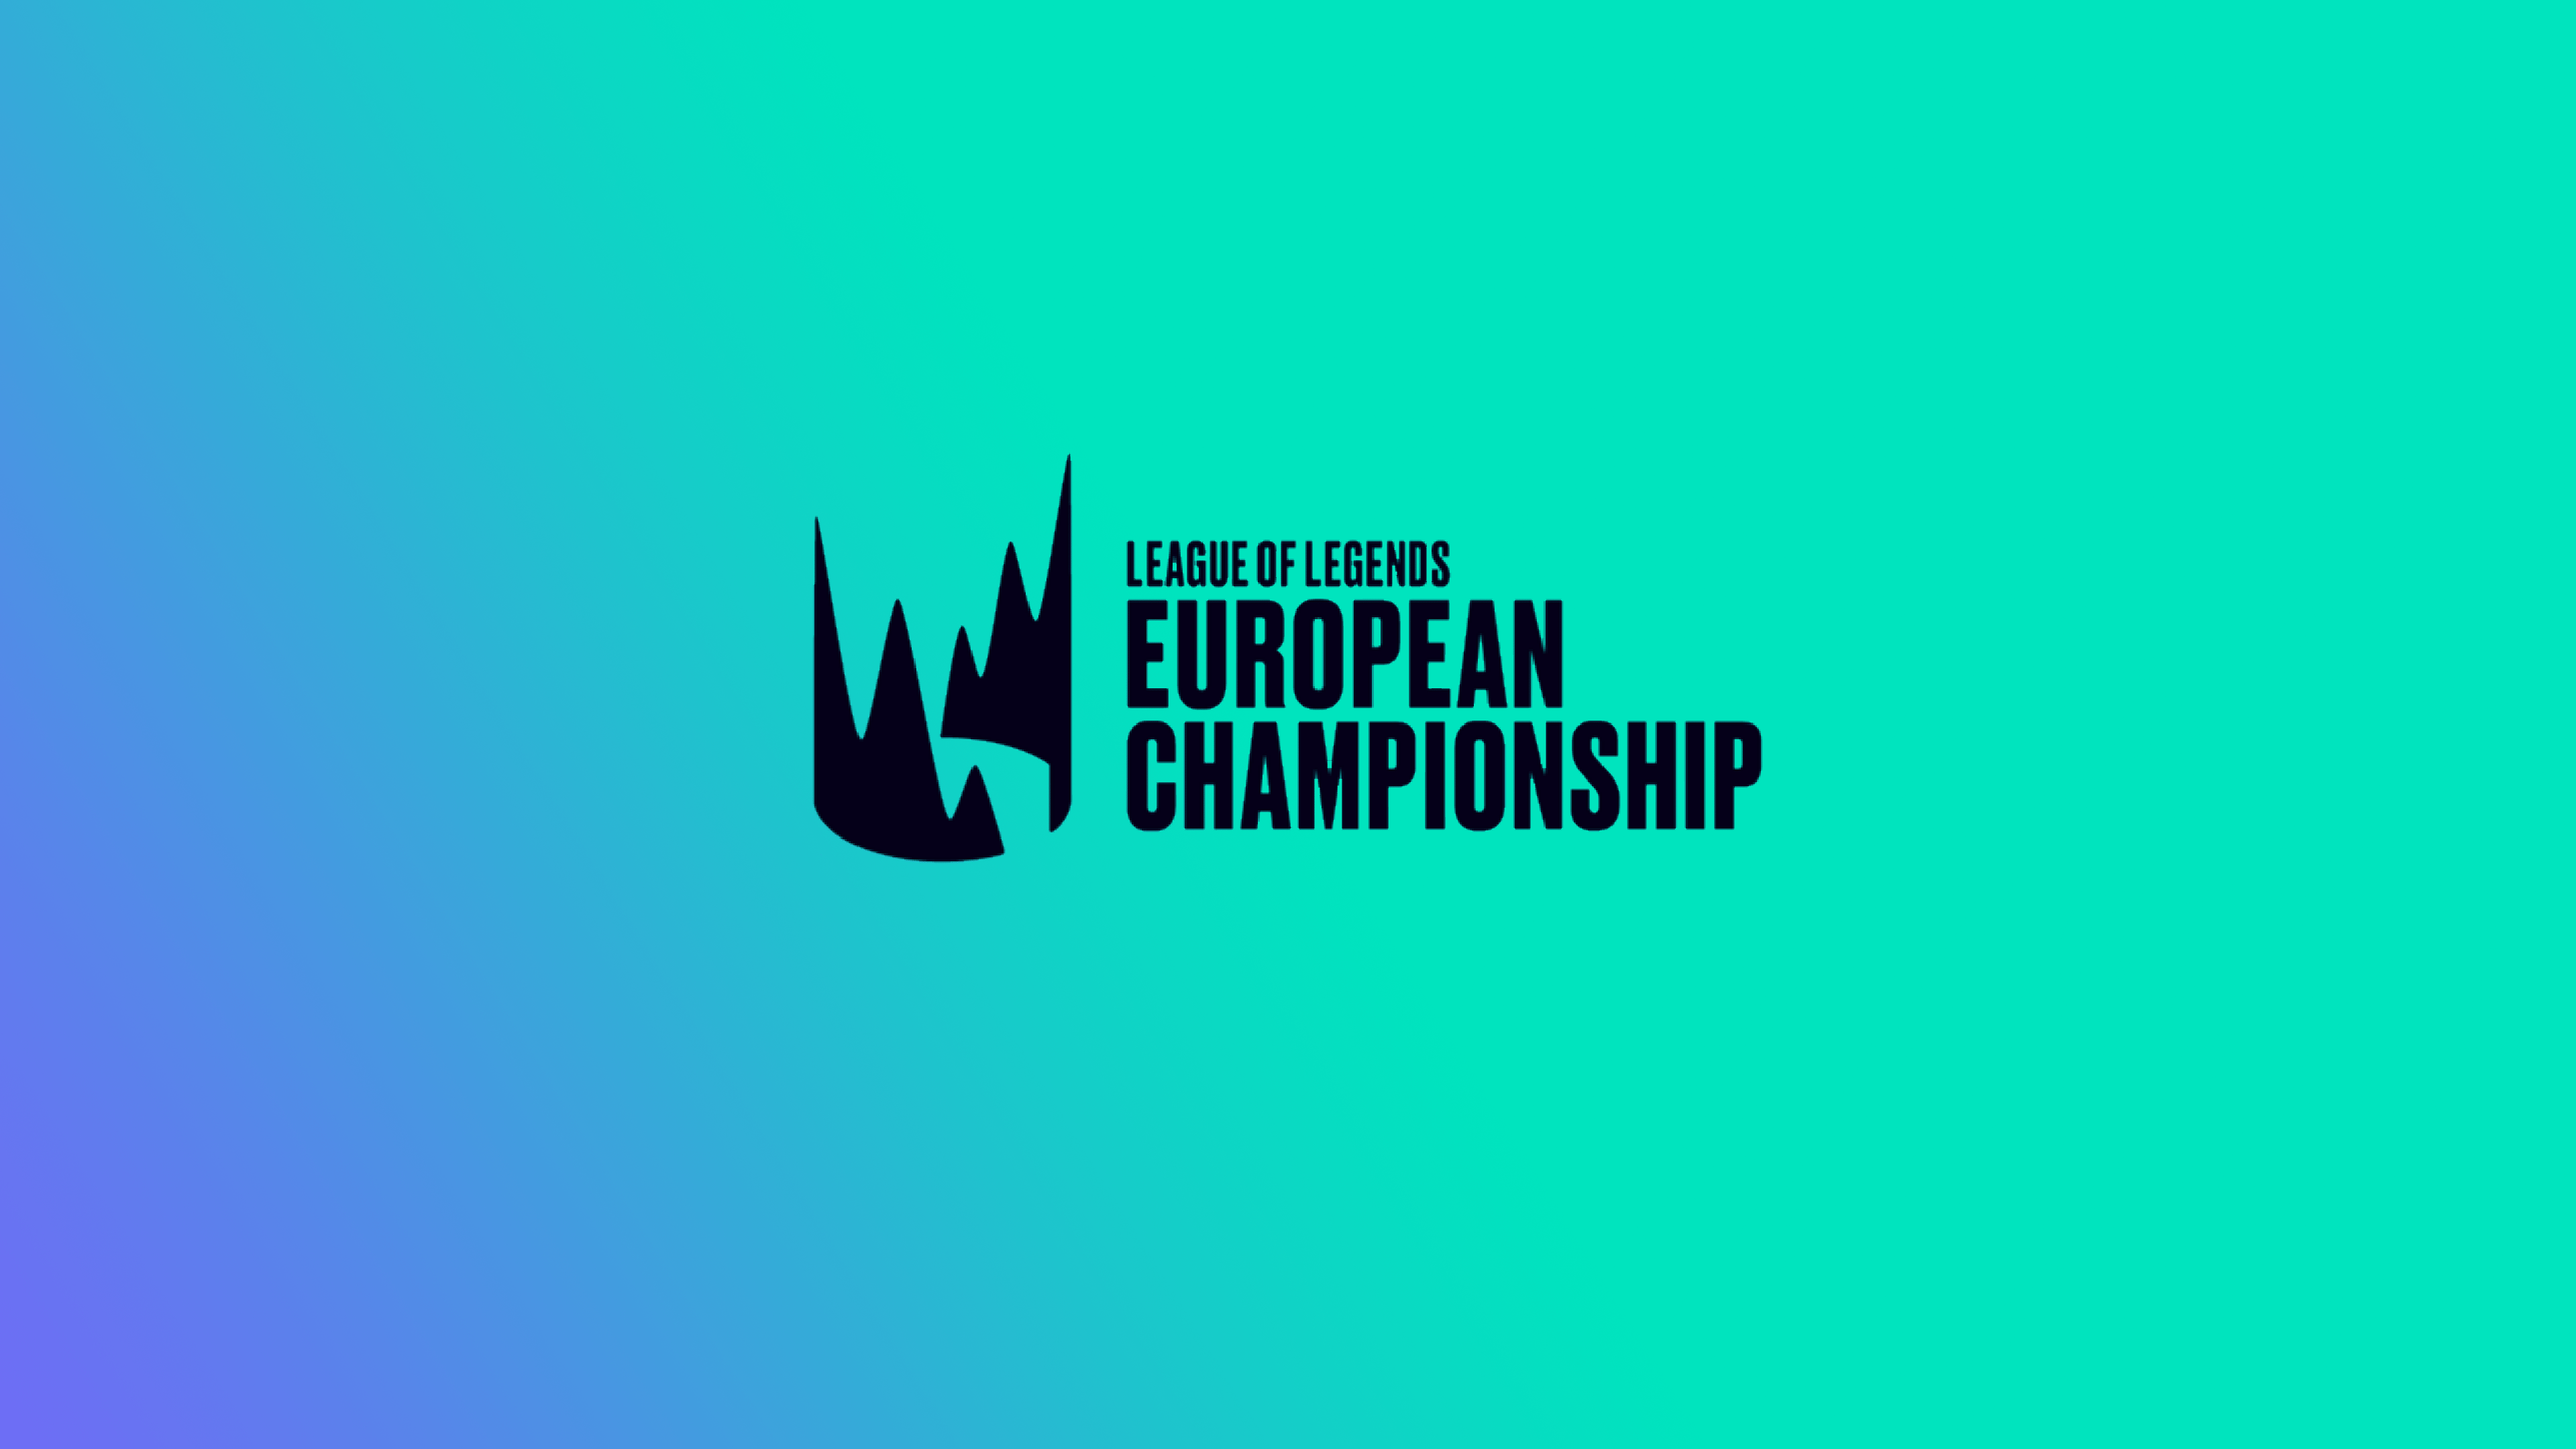 LEC – According To Leaked Chat Logs, Origen's (Current Astralis) ADC Upset Might Be Joining Invictus Gaming